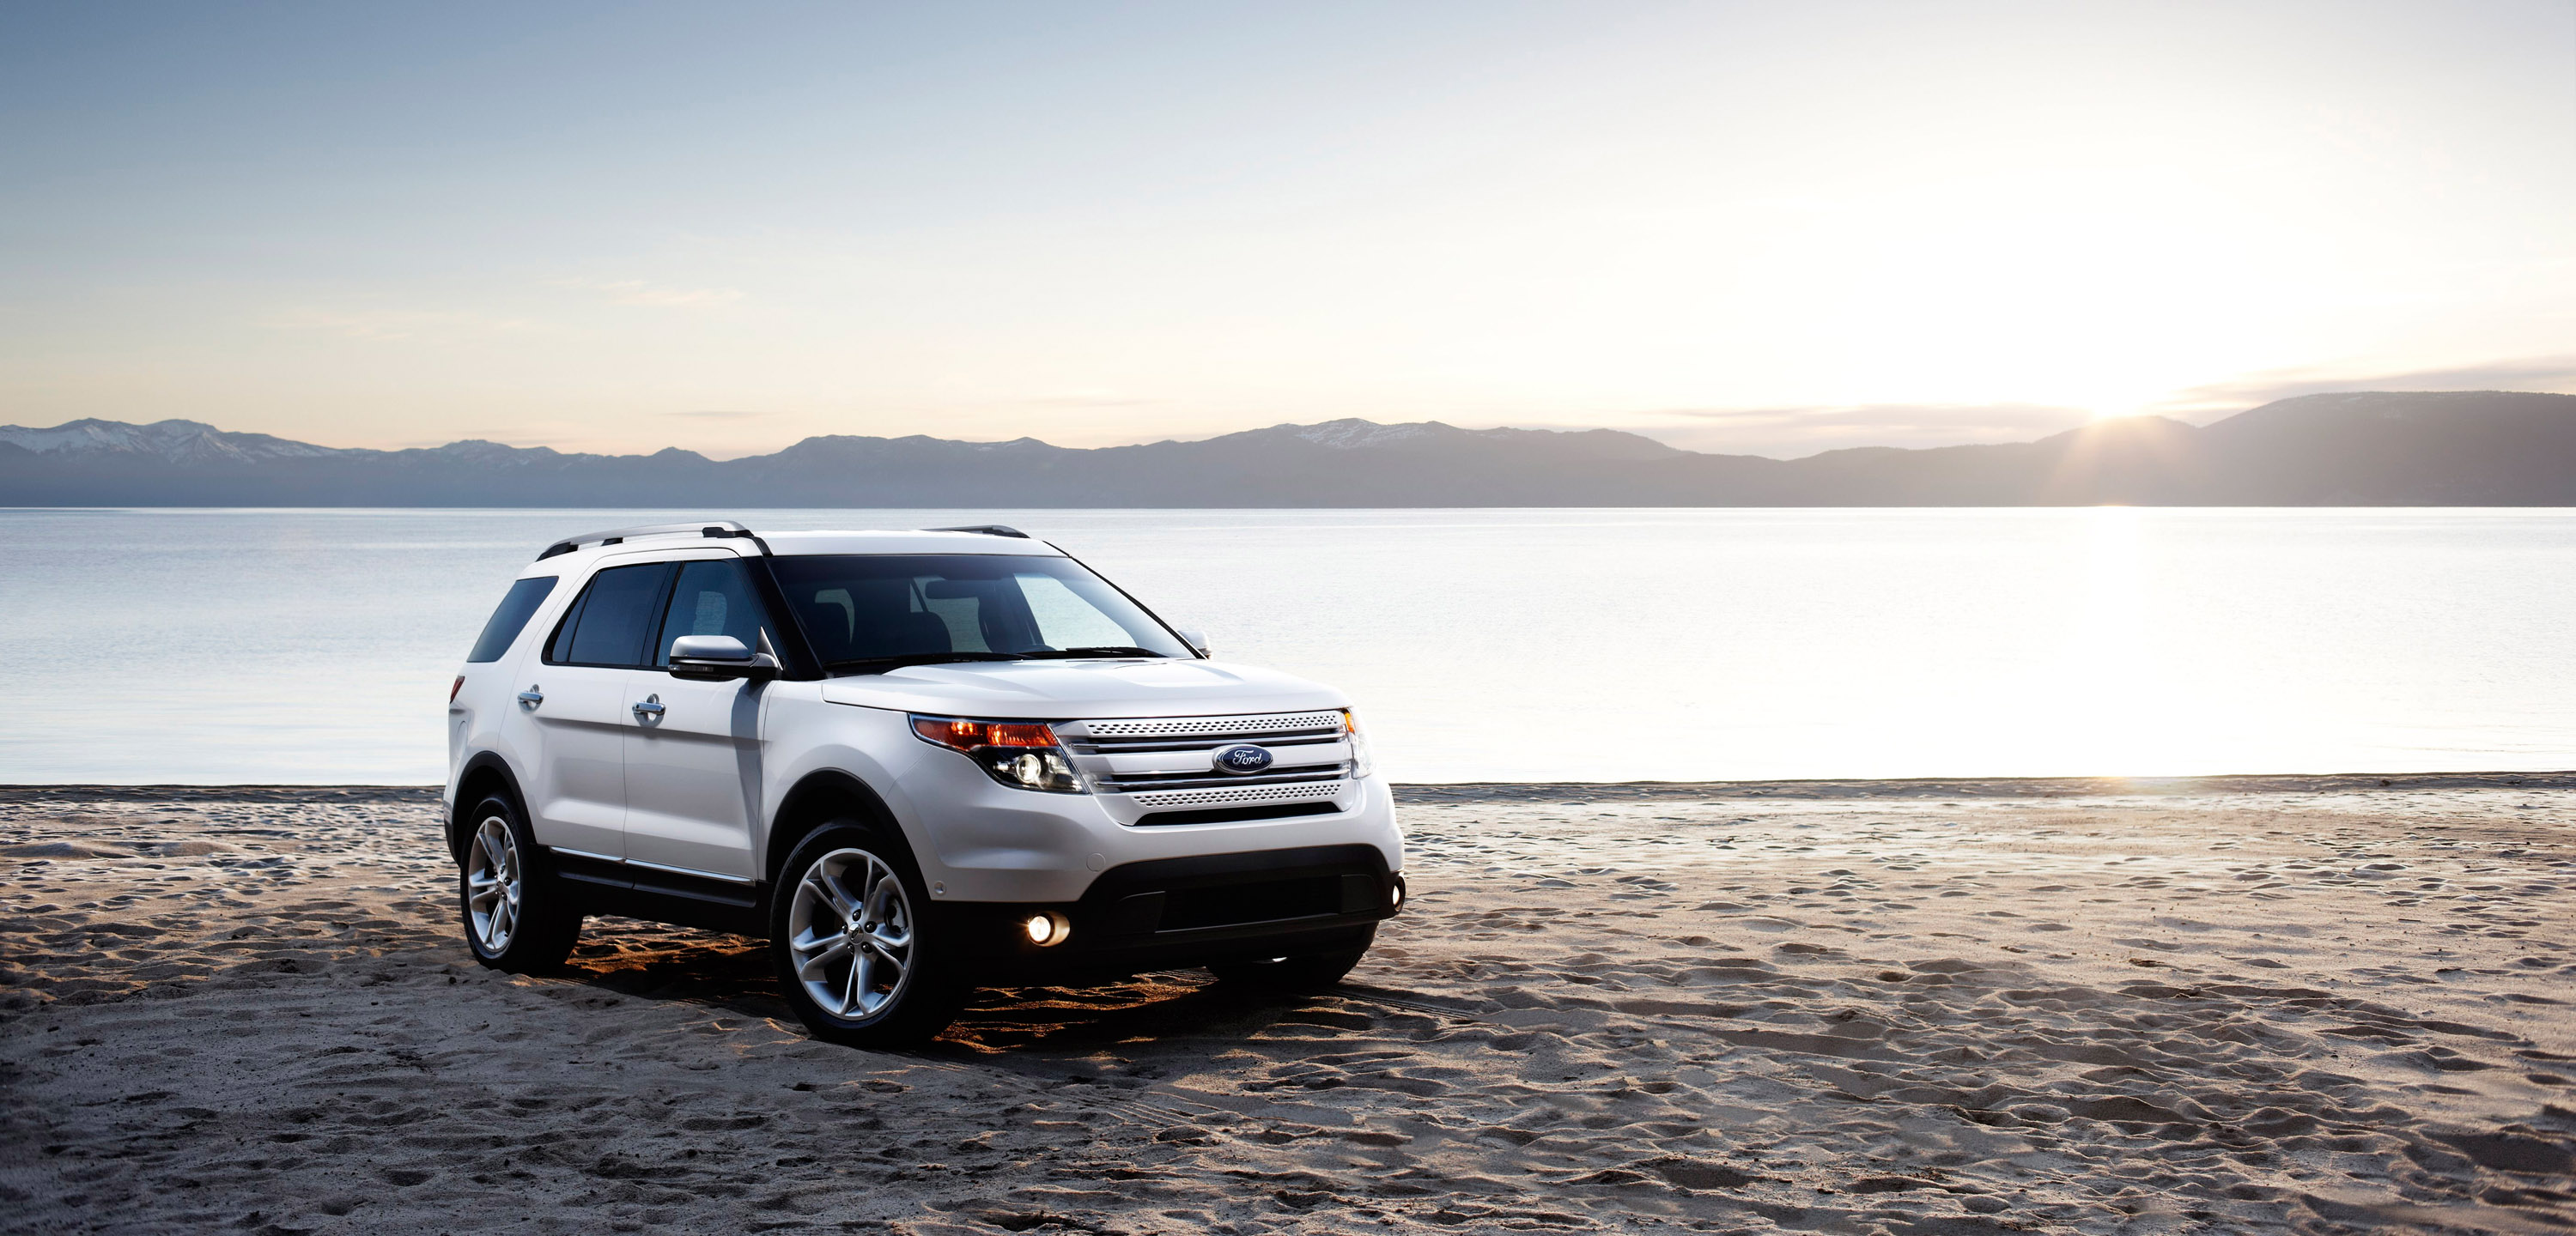 2011 Ford Explorer The Outstanding Suv